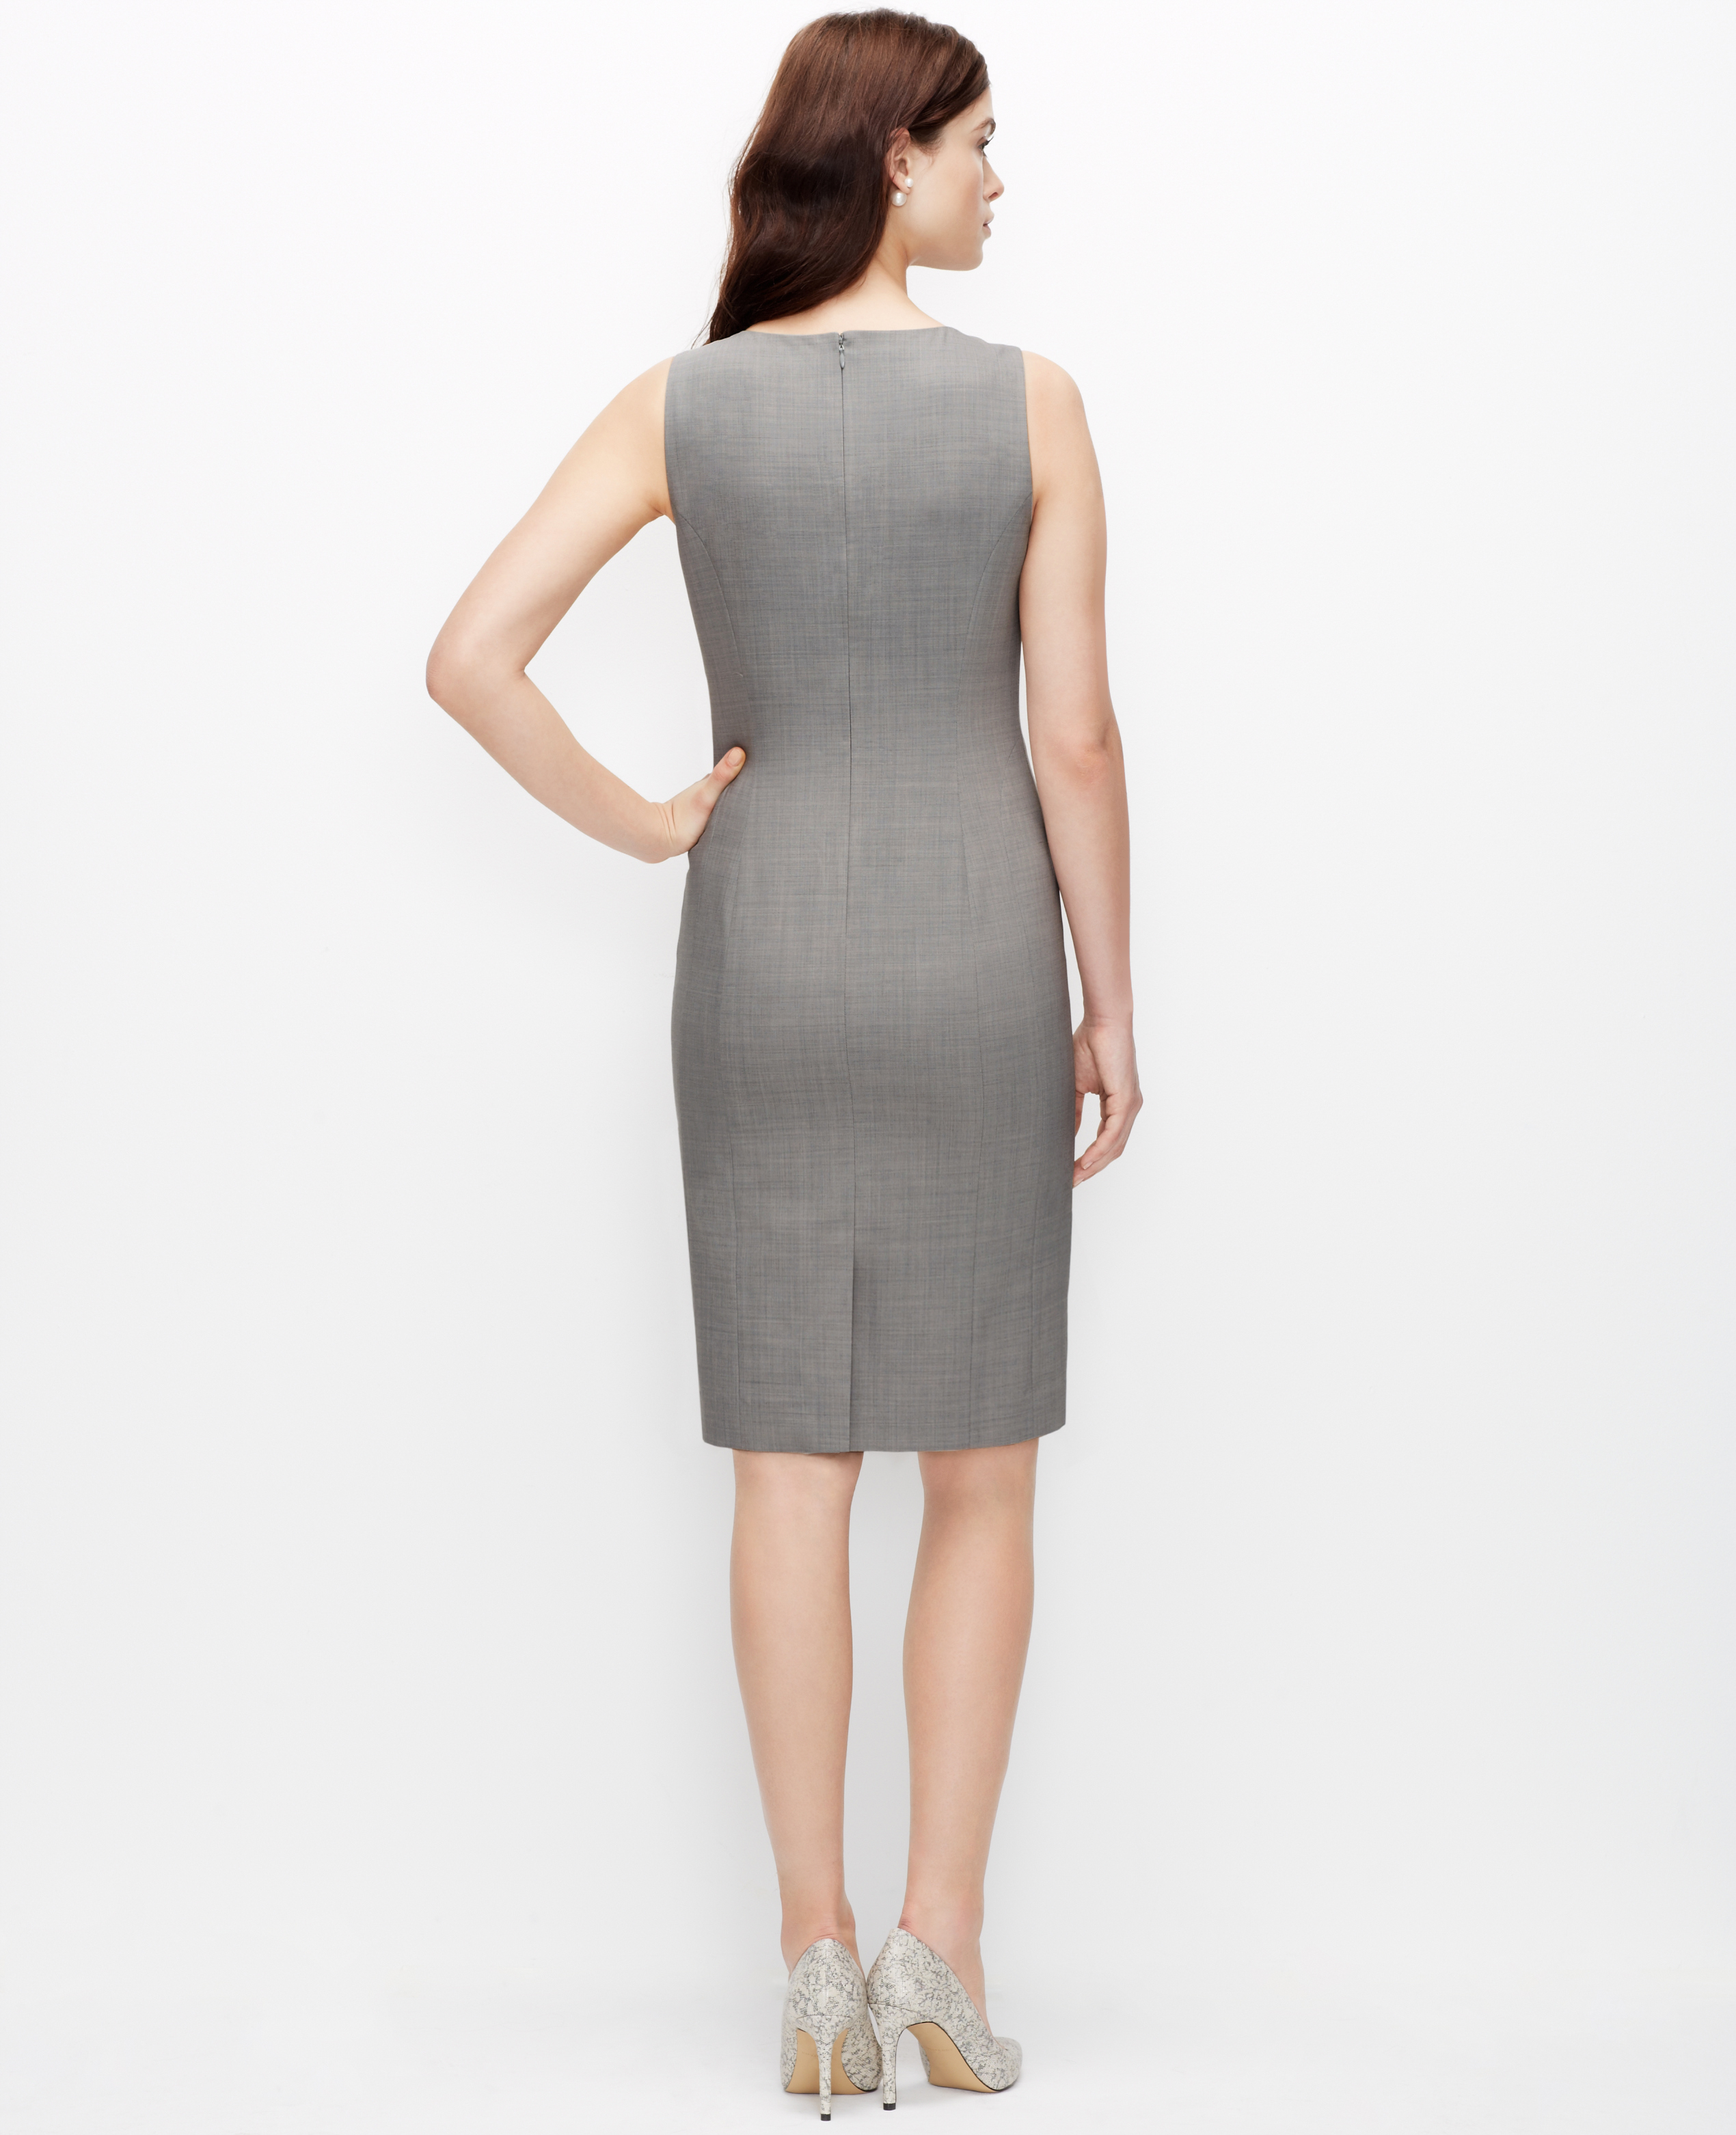 Ann taylor Tropical Wool Sheath Dress in Gray | Lyst